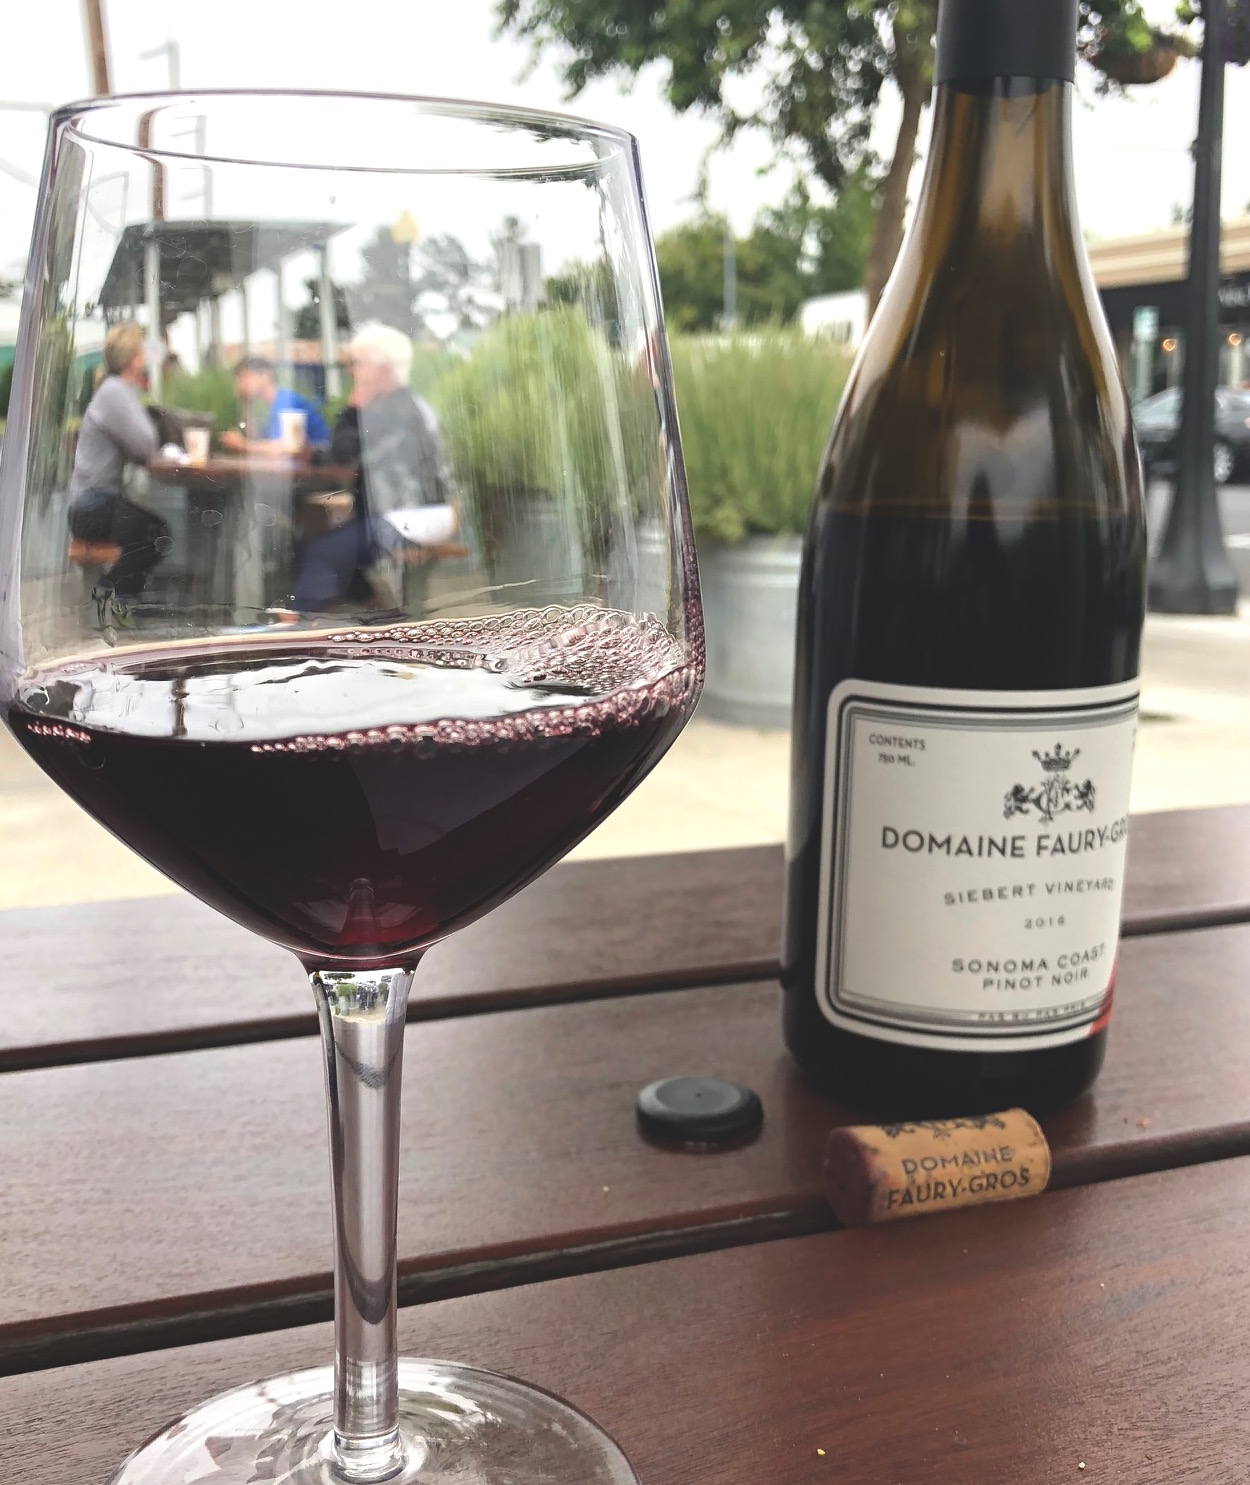 domaine faury gros pinot noir